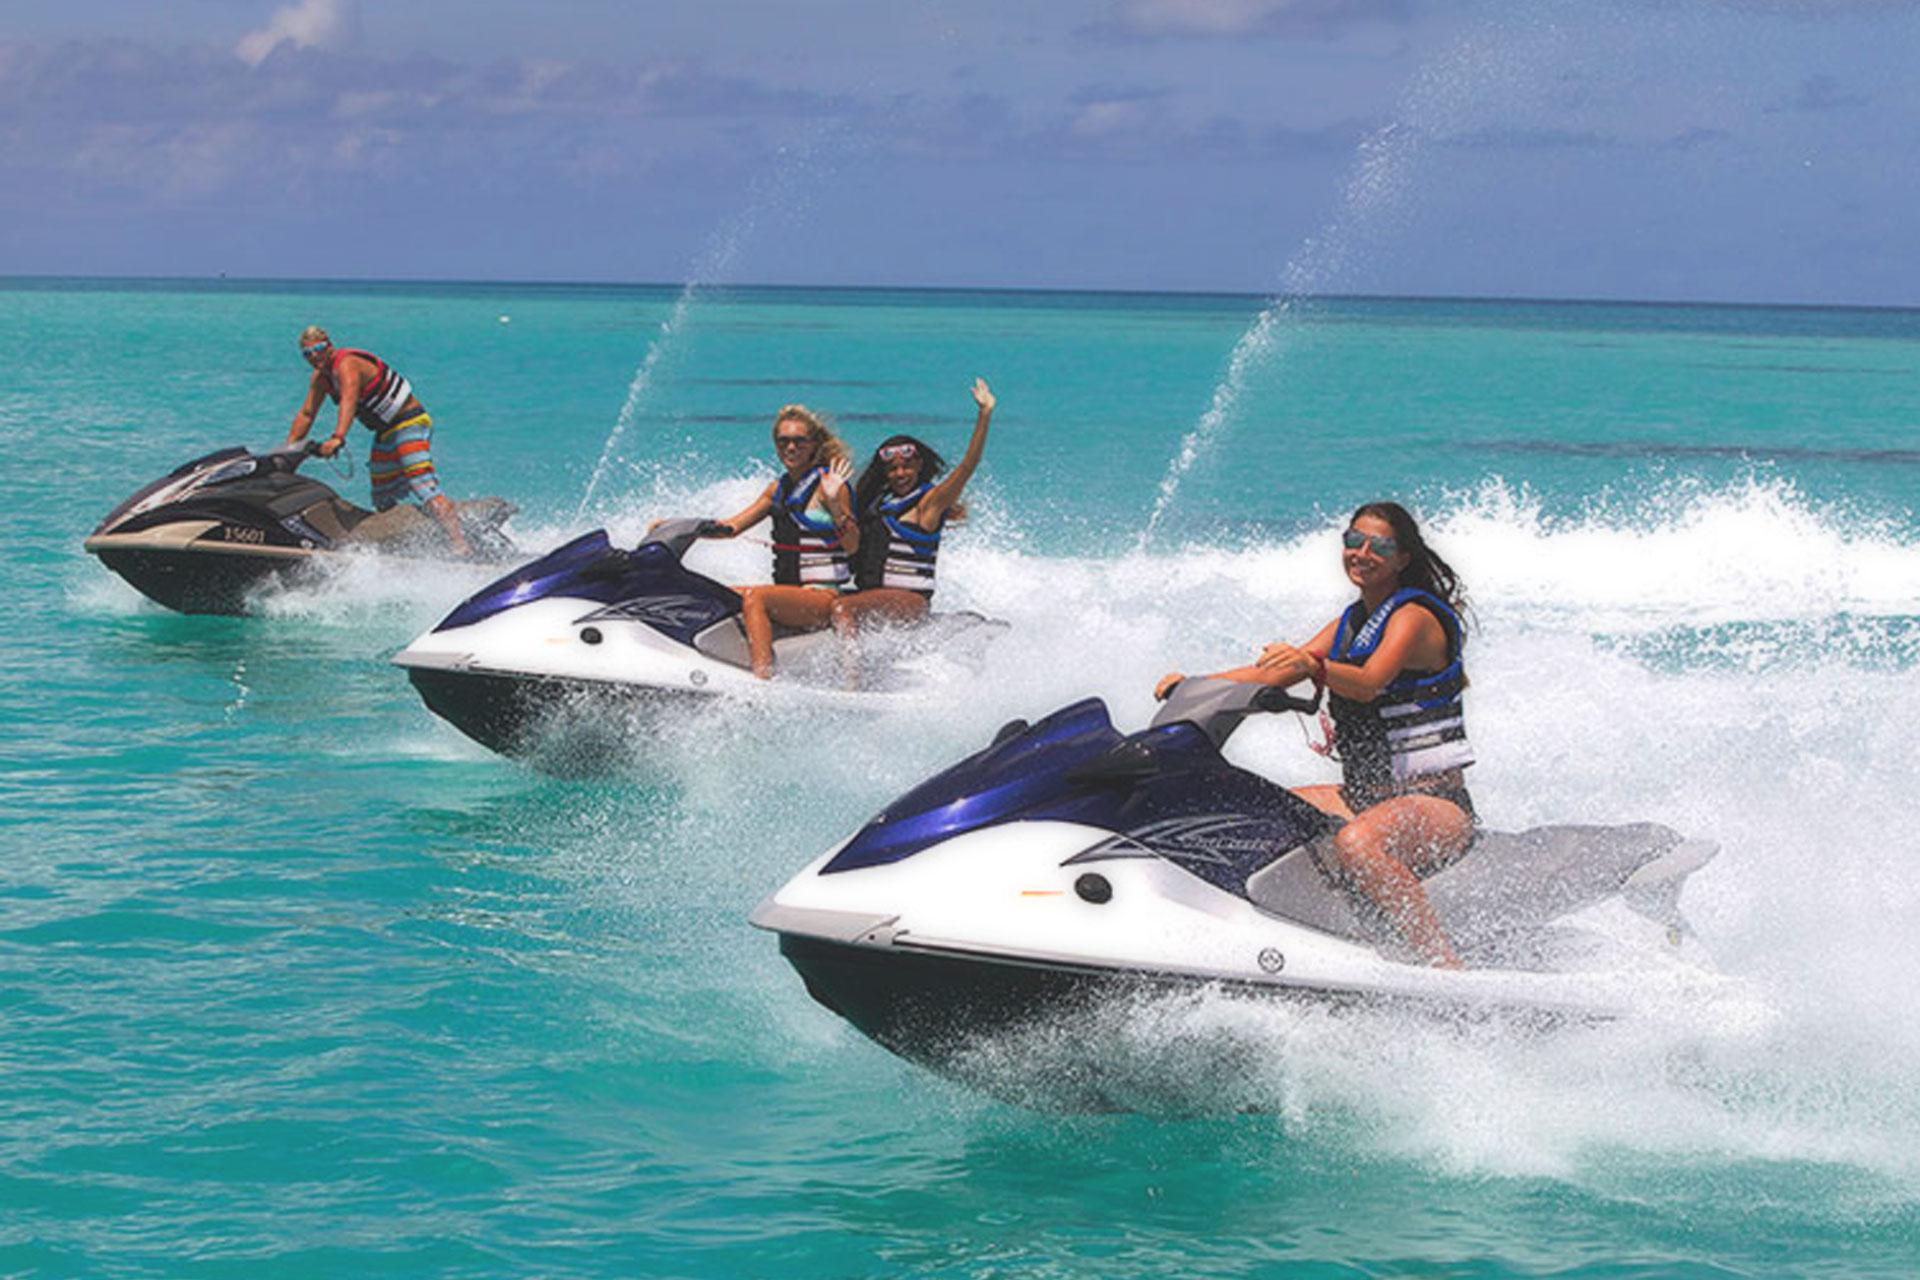 images/products/jet-ski-safari-tenerife-package.jpg